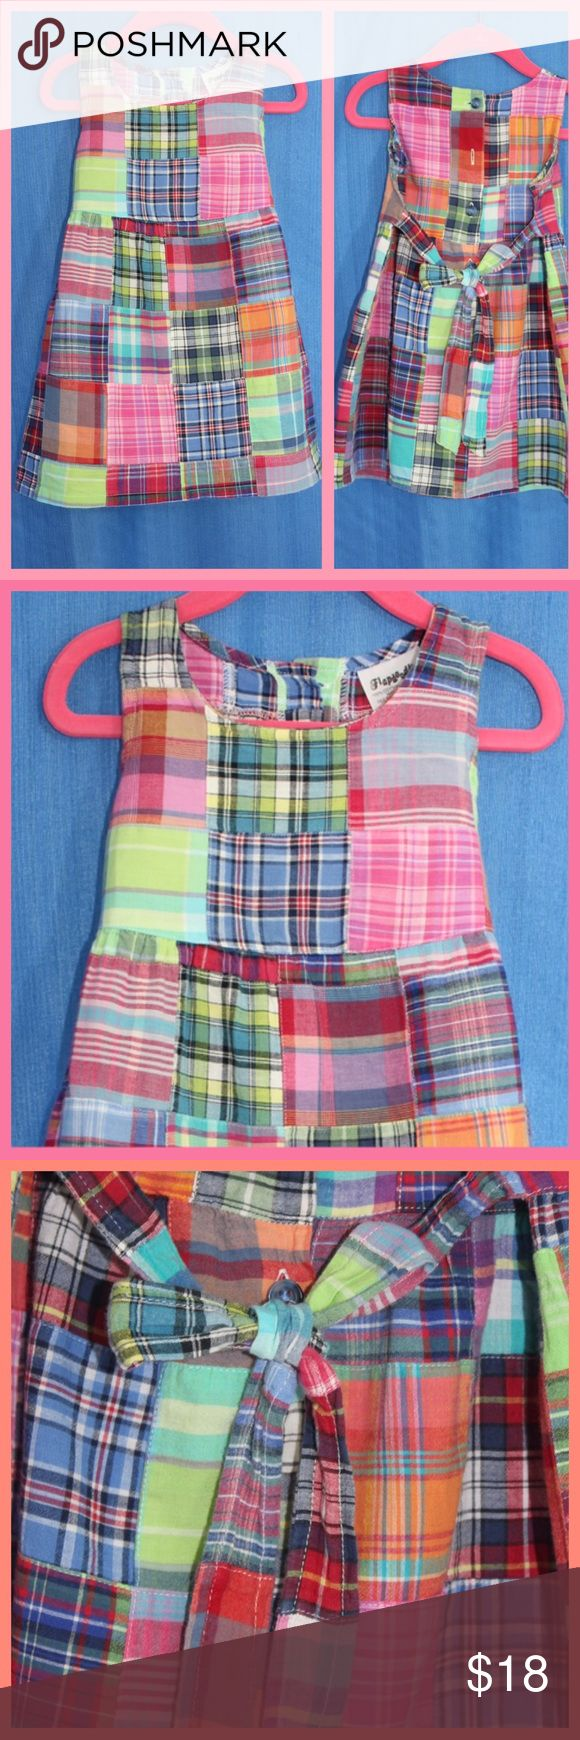 Flapdoodles Madras Patchwork Jumper, Prep Classic A Preppy Classic! Madras plaid square patchwork jumper is great for summer and can well go into Fall with a tee or blouse underneath. Flapdoodles Dresses Casual